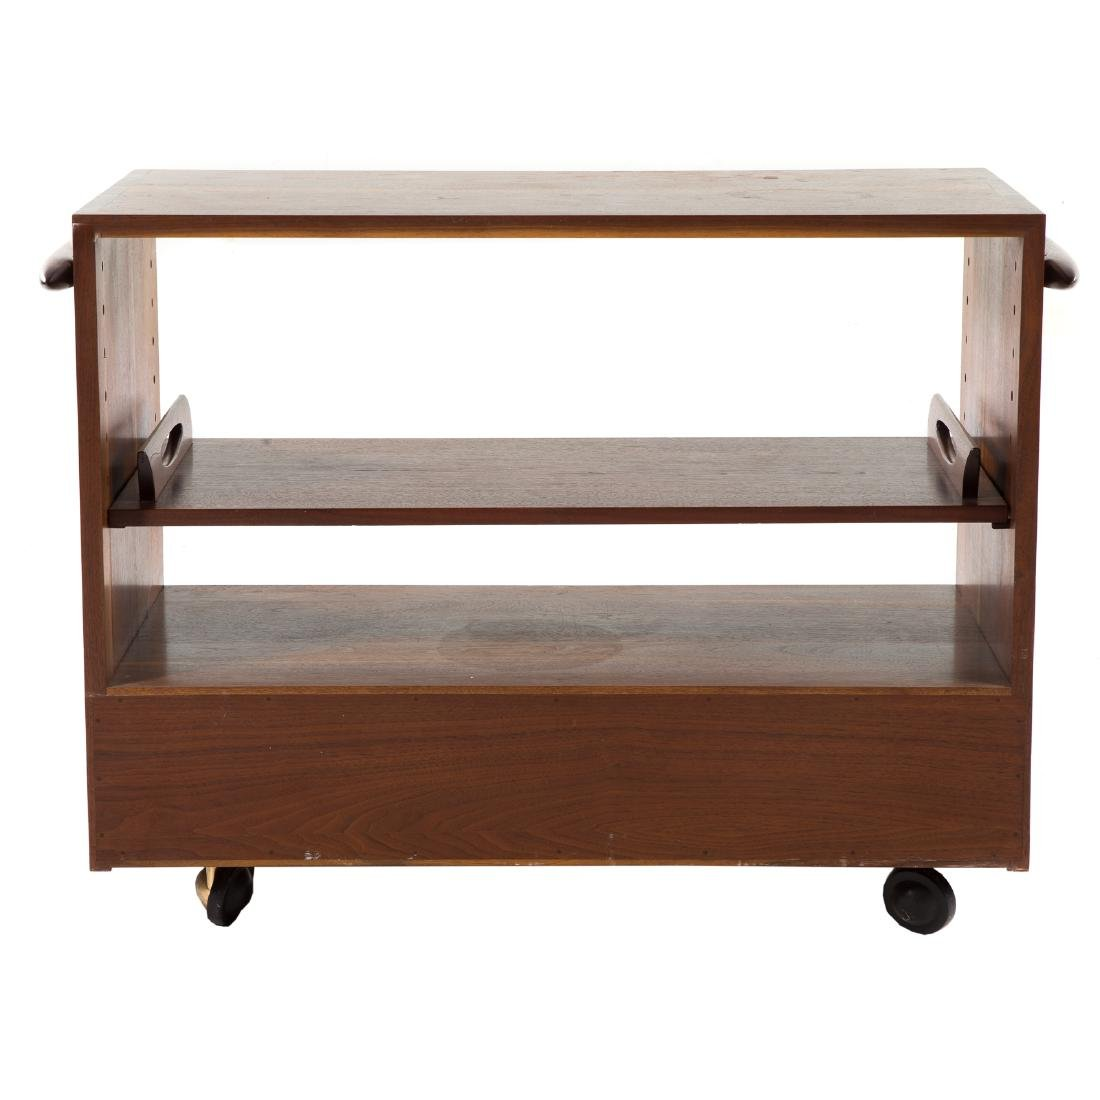 George Nakashima Rare Custom Tea Cart - 8